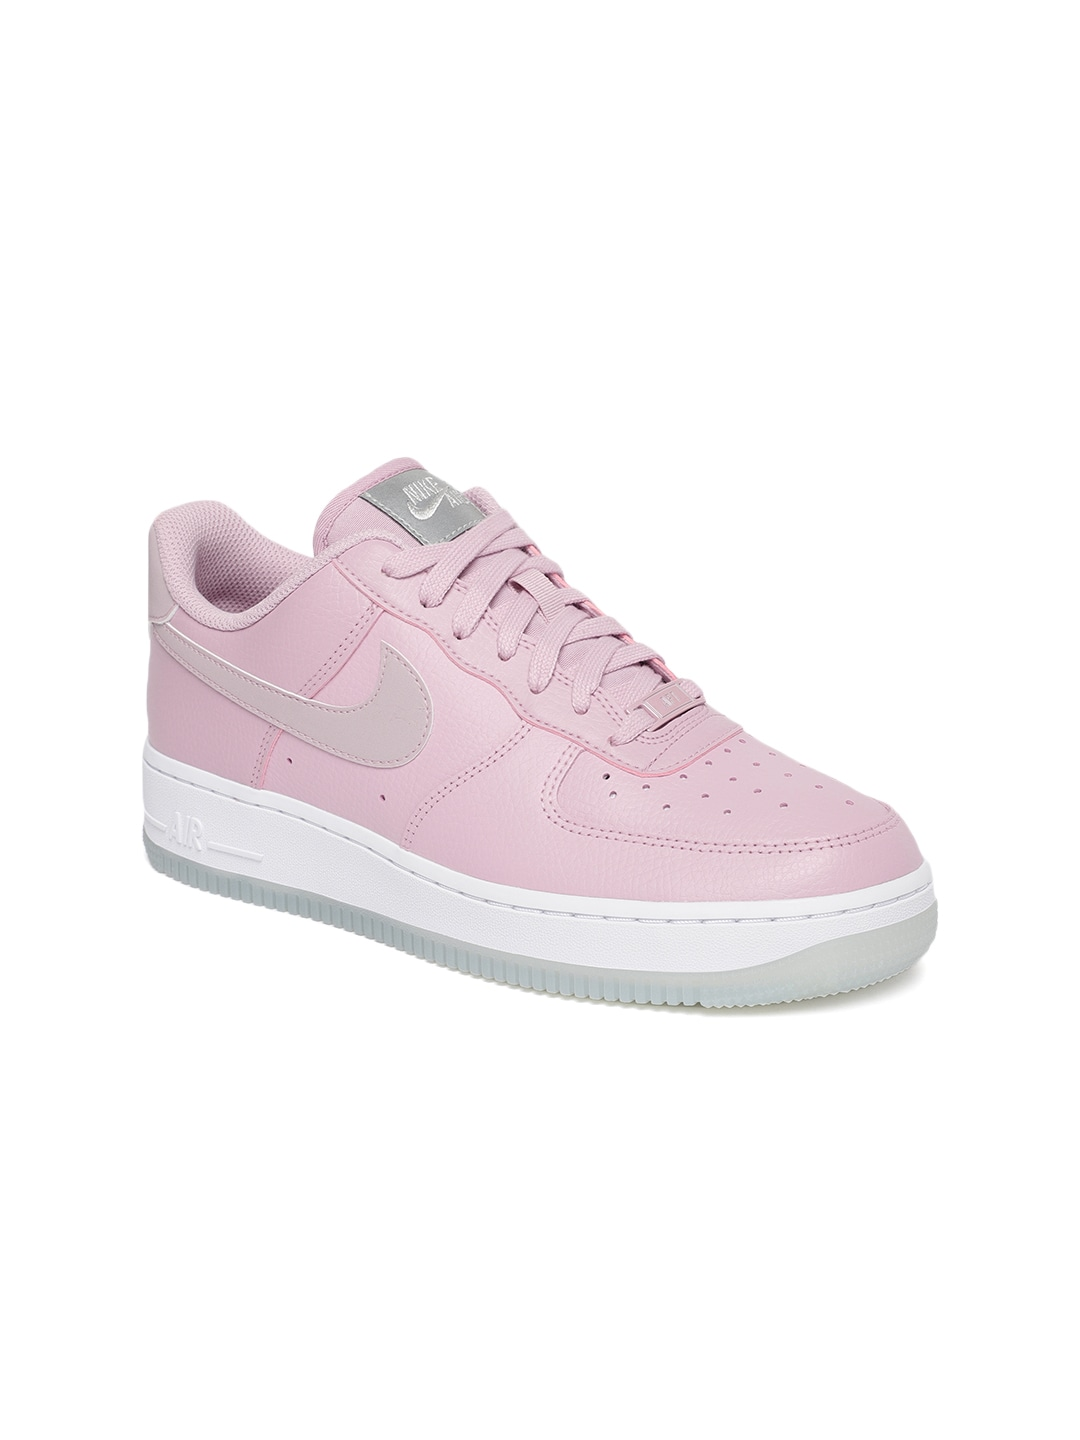 43d6189f7e7 Buy Nike Women Blue Air Force 1  07 Ess Leather Sneakers - Casual ...